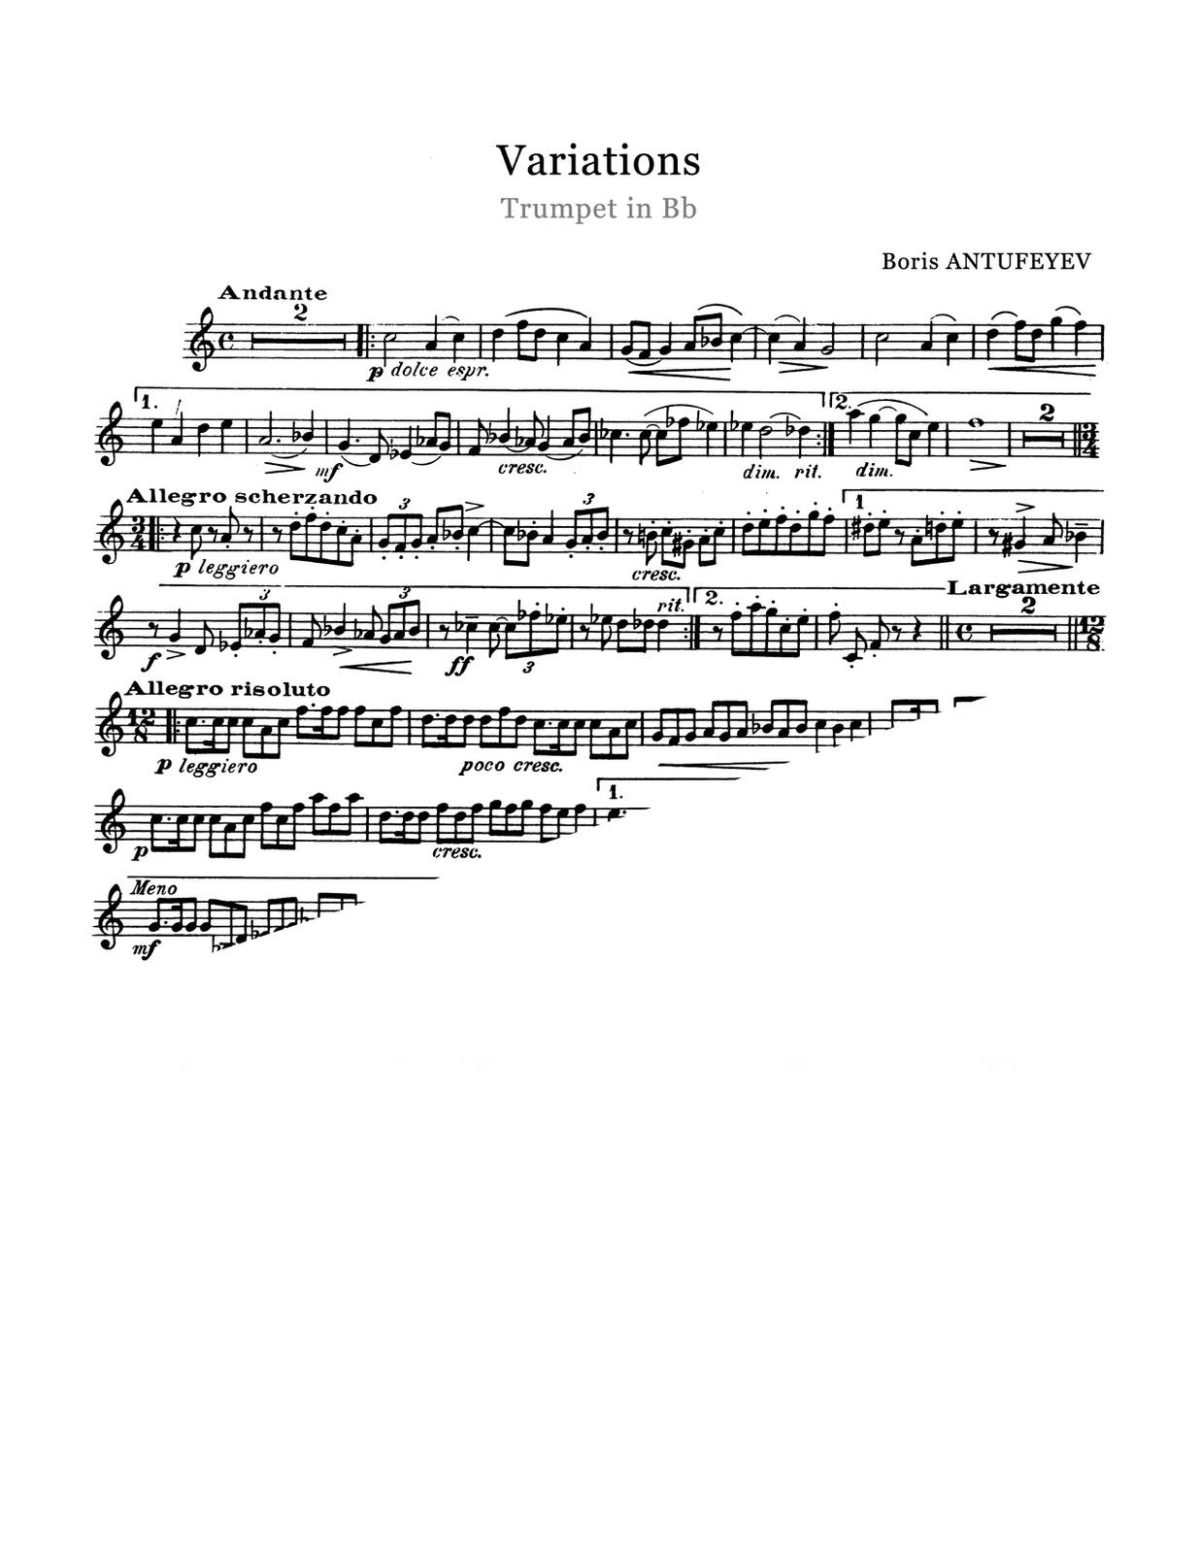 Antufeyev, Boris, Variations for Trumpet and Piano-p03